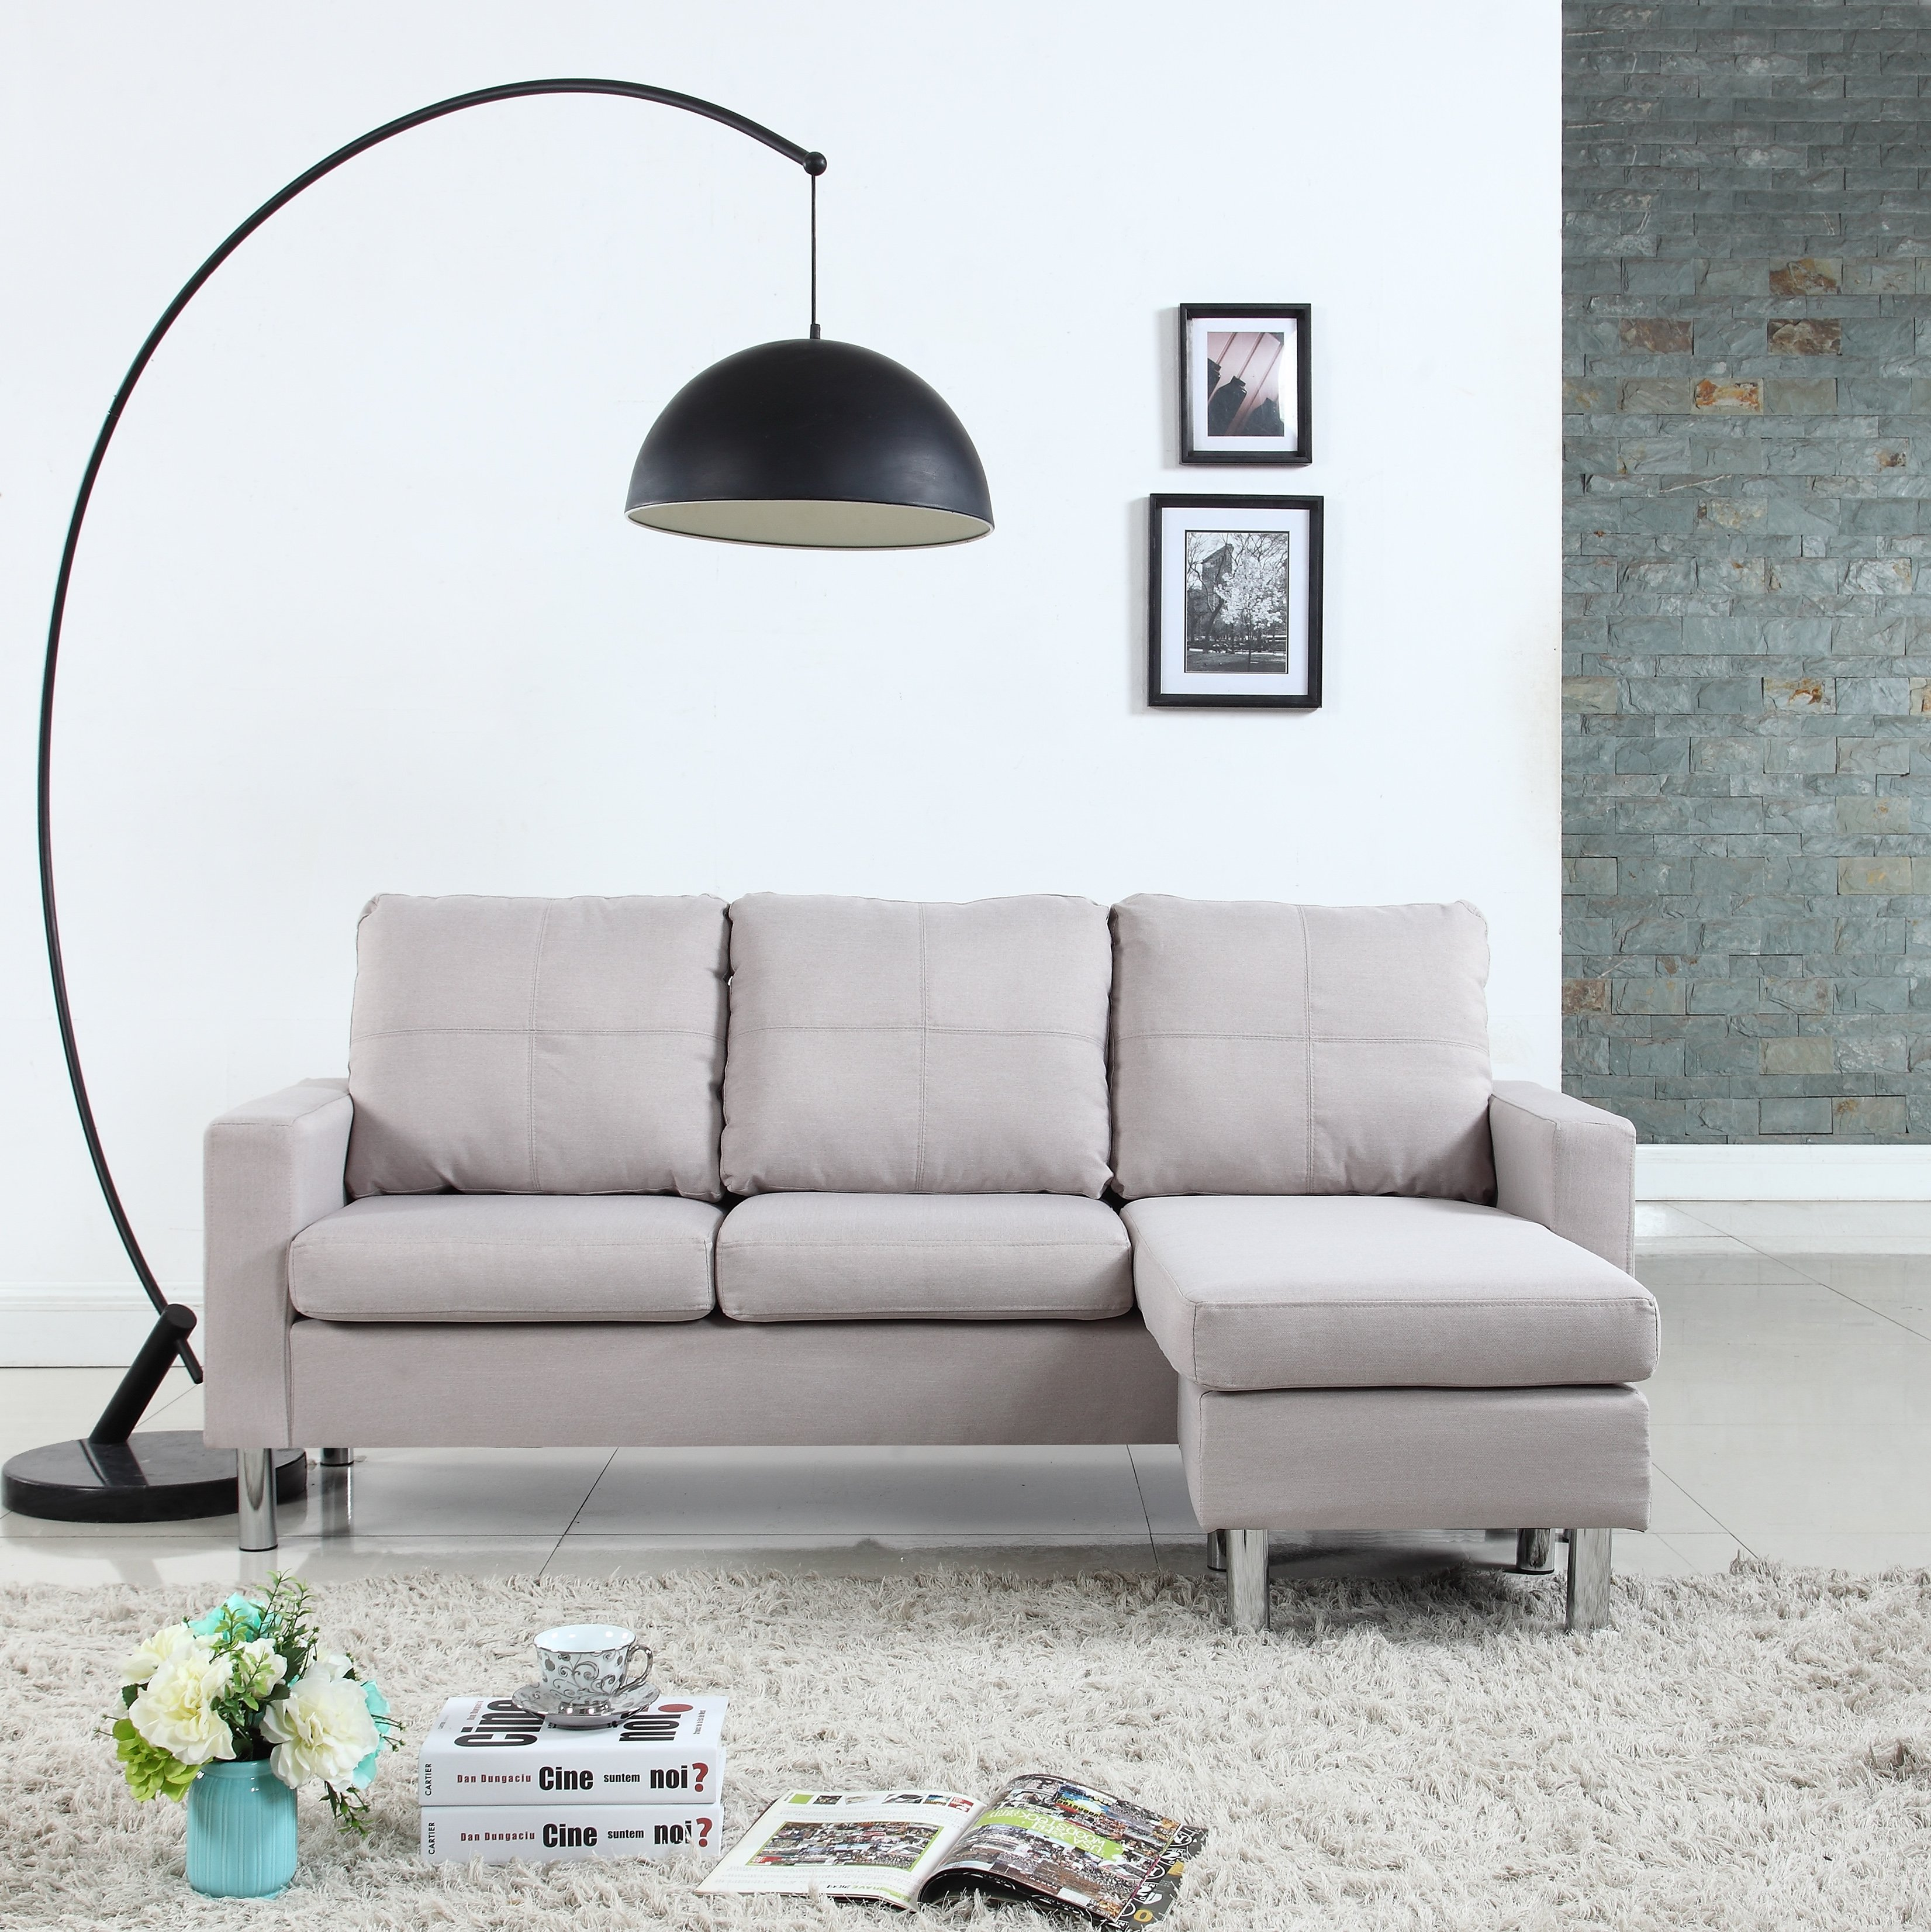 Modern Living Room Furniture For Small Spaces Moderne Living Room Reversible Linen Fabric Sectional Sofa Beige